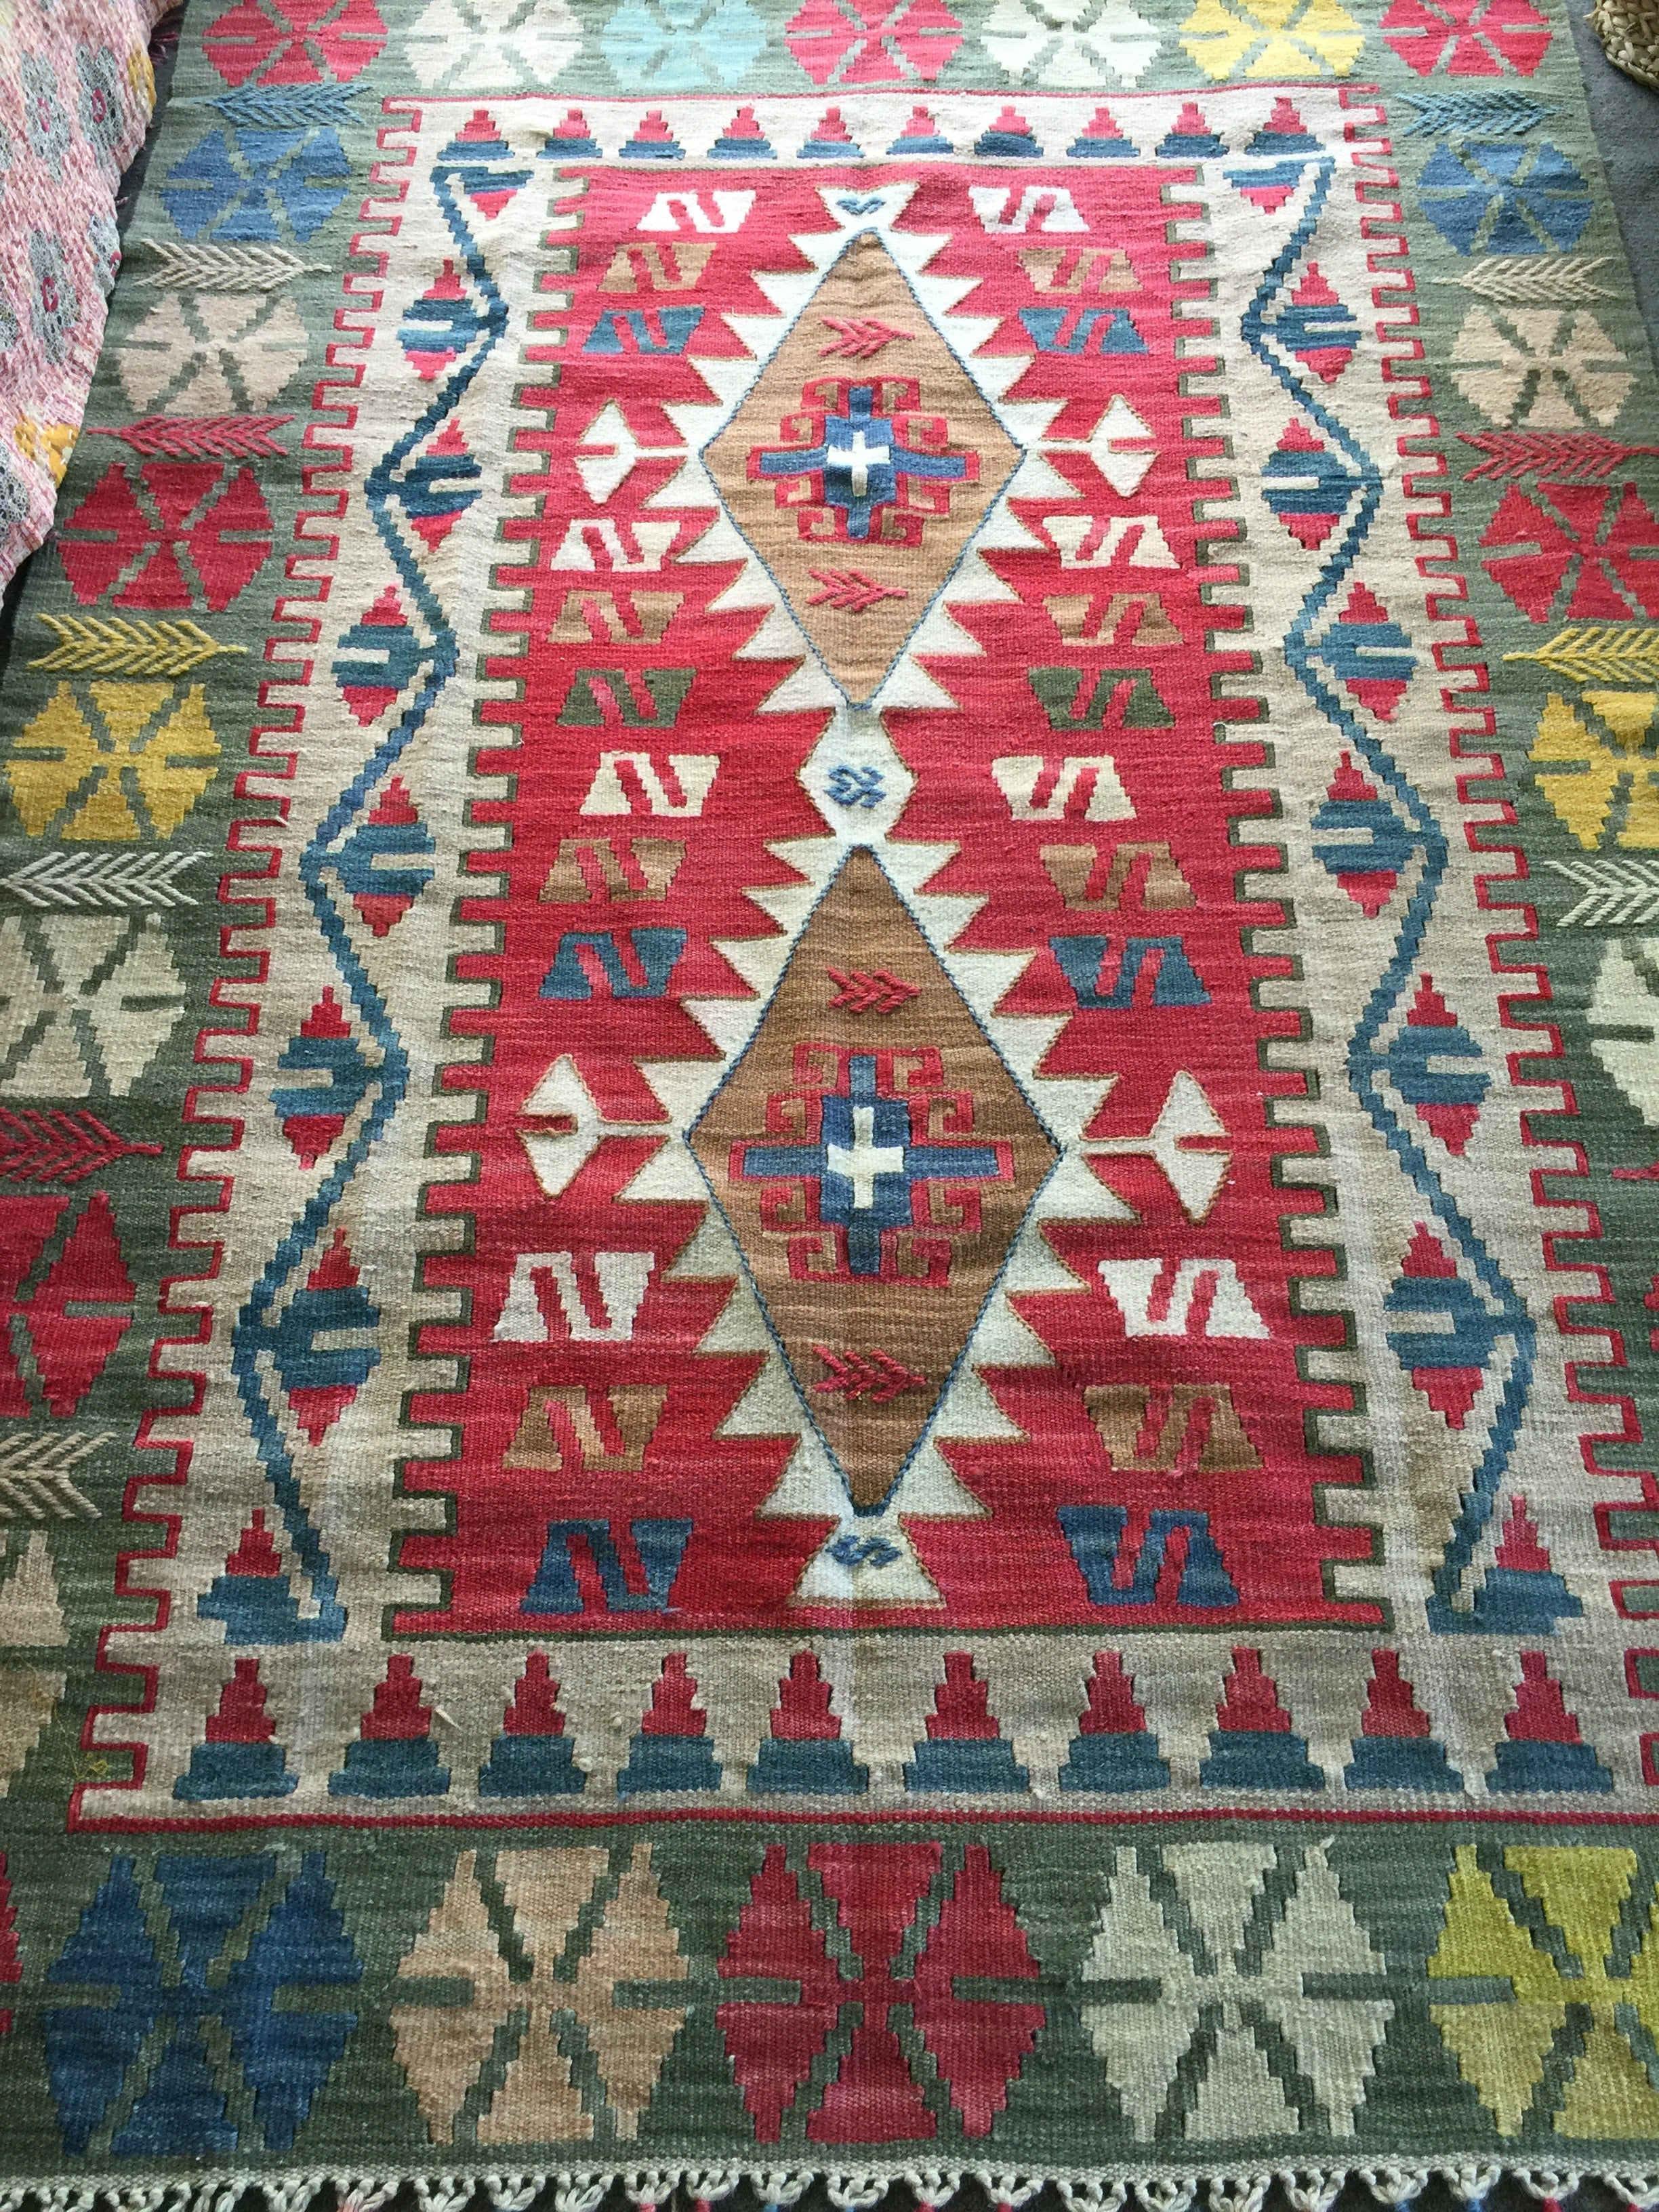 SOLD OUT‼️TURKISH KILIM RUG| Harika|Vintage | One of a Kind| Boho Kilim|4' x 5.6'